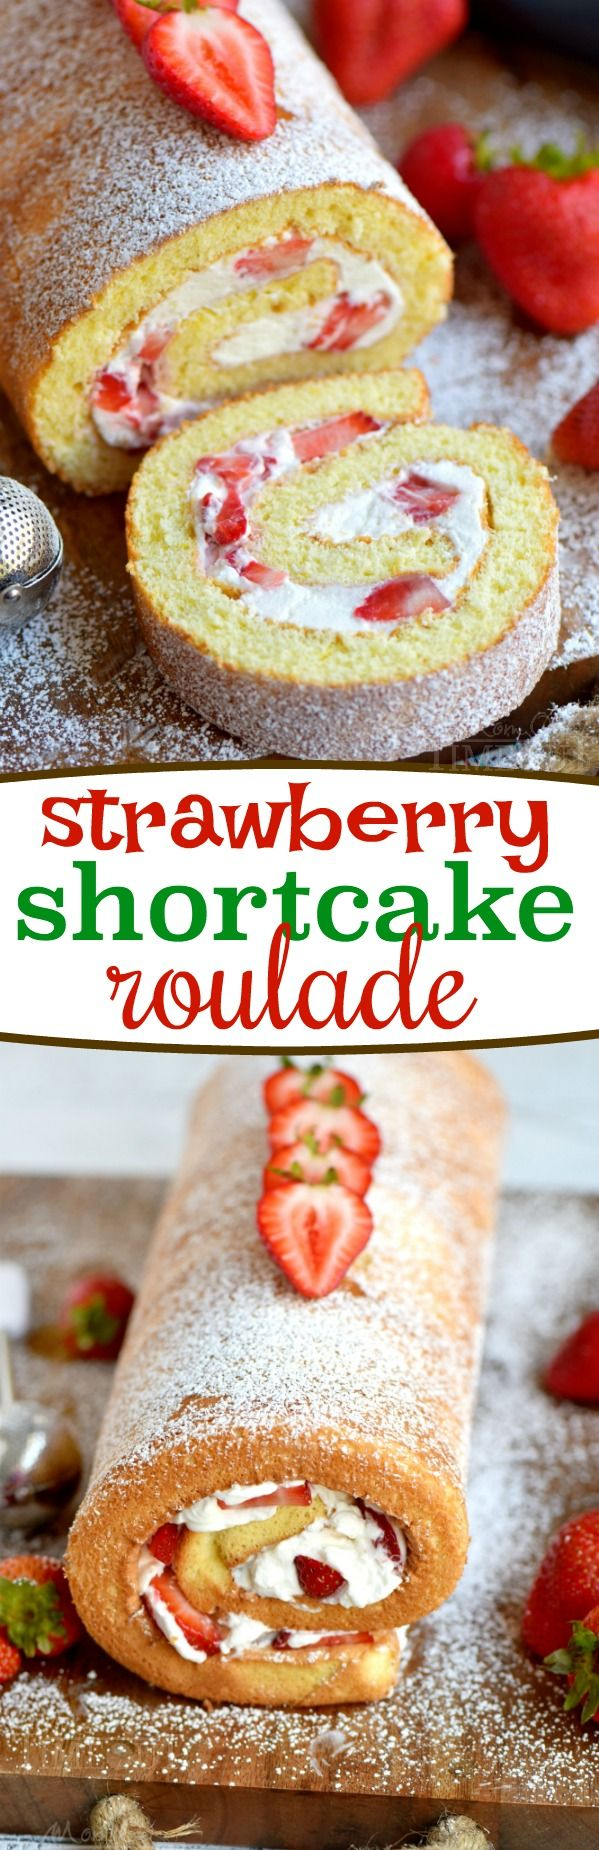 This Strawberry Shortcake Roulade is the quintessential summer dessert. Cake rolls are always stunning but this one is particularly so. Light and airy cake wrapped around a sweet whipped cream and fresh strawberry filling - entirely irresistible! // Mom On Timeout #strawberry #cake #dessert #recipe